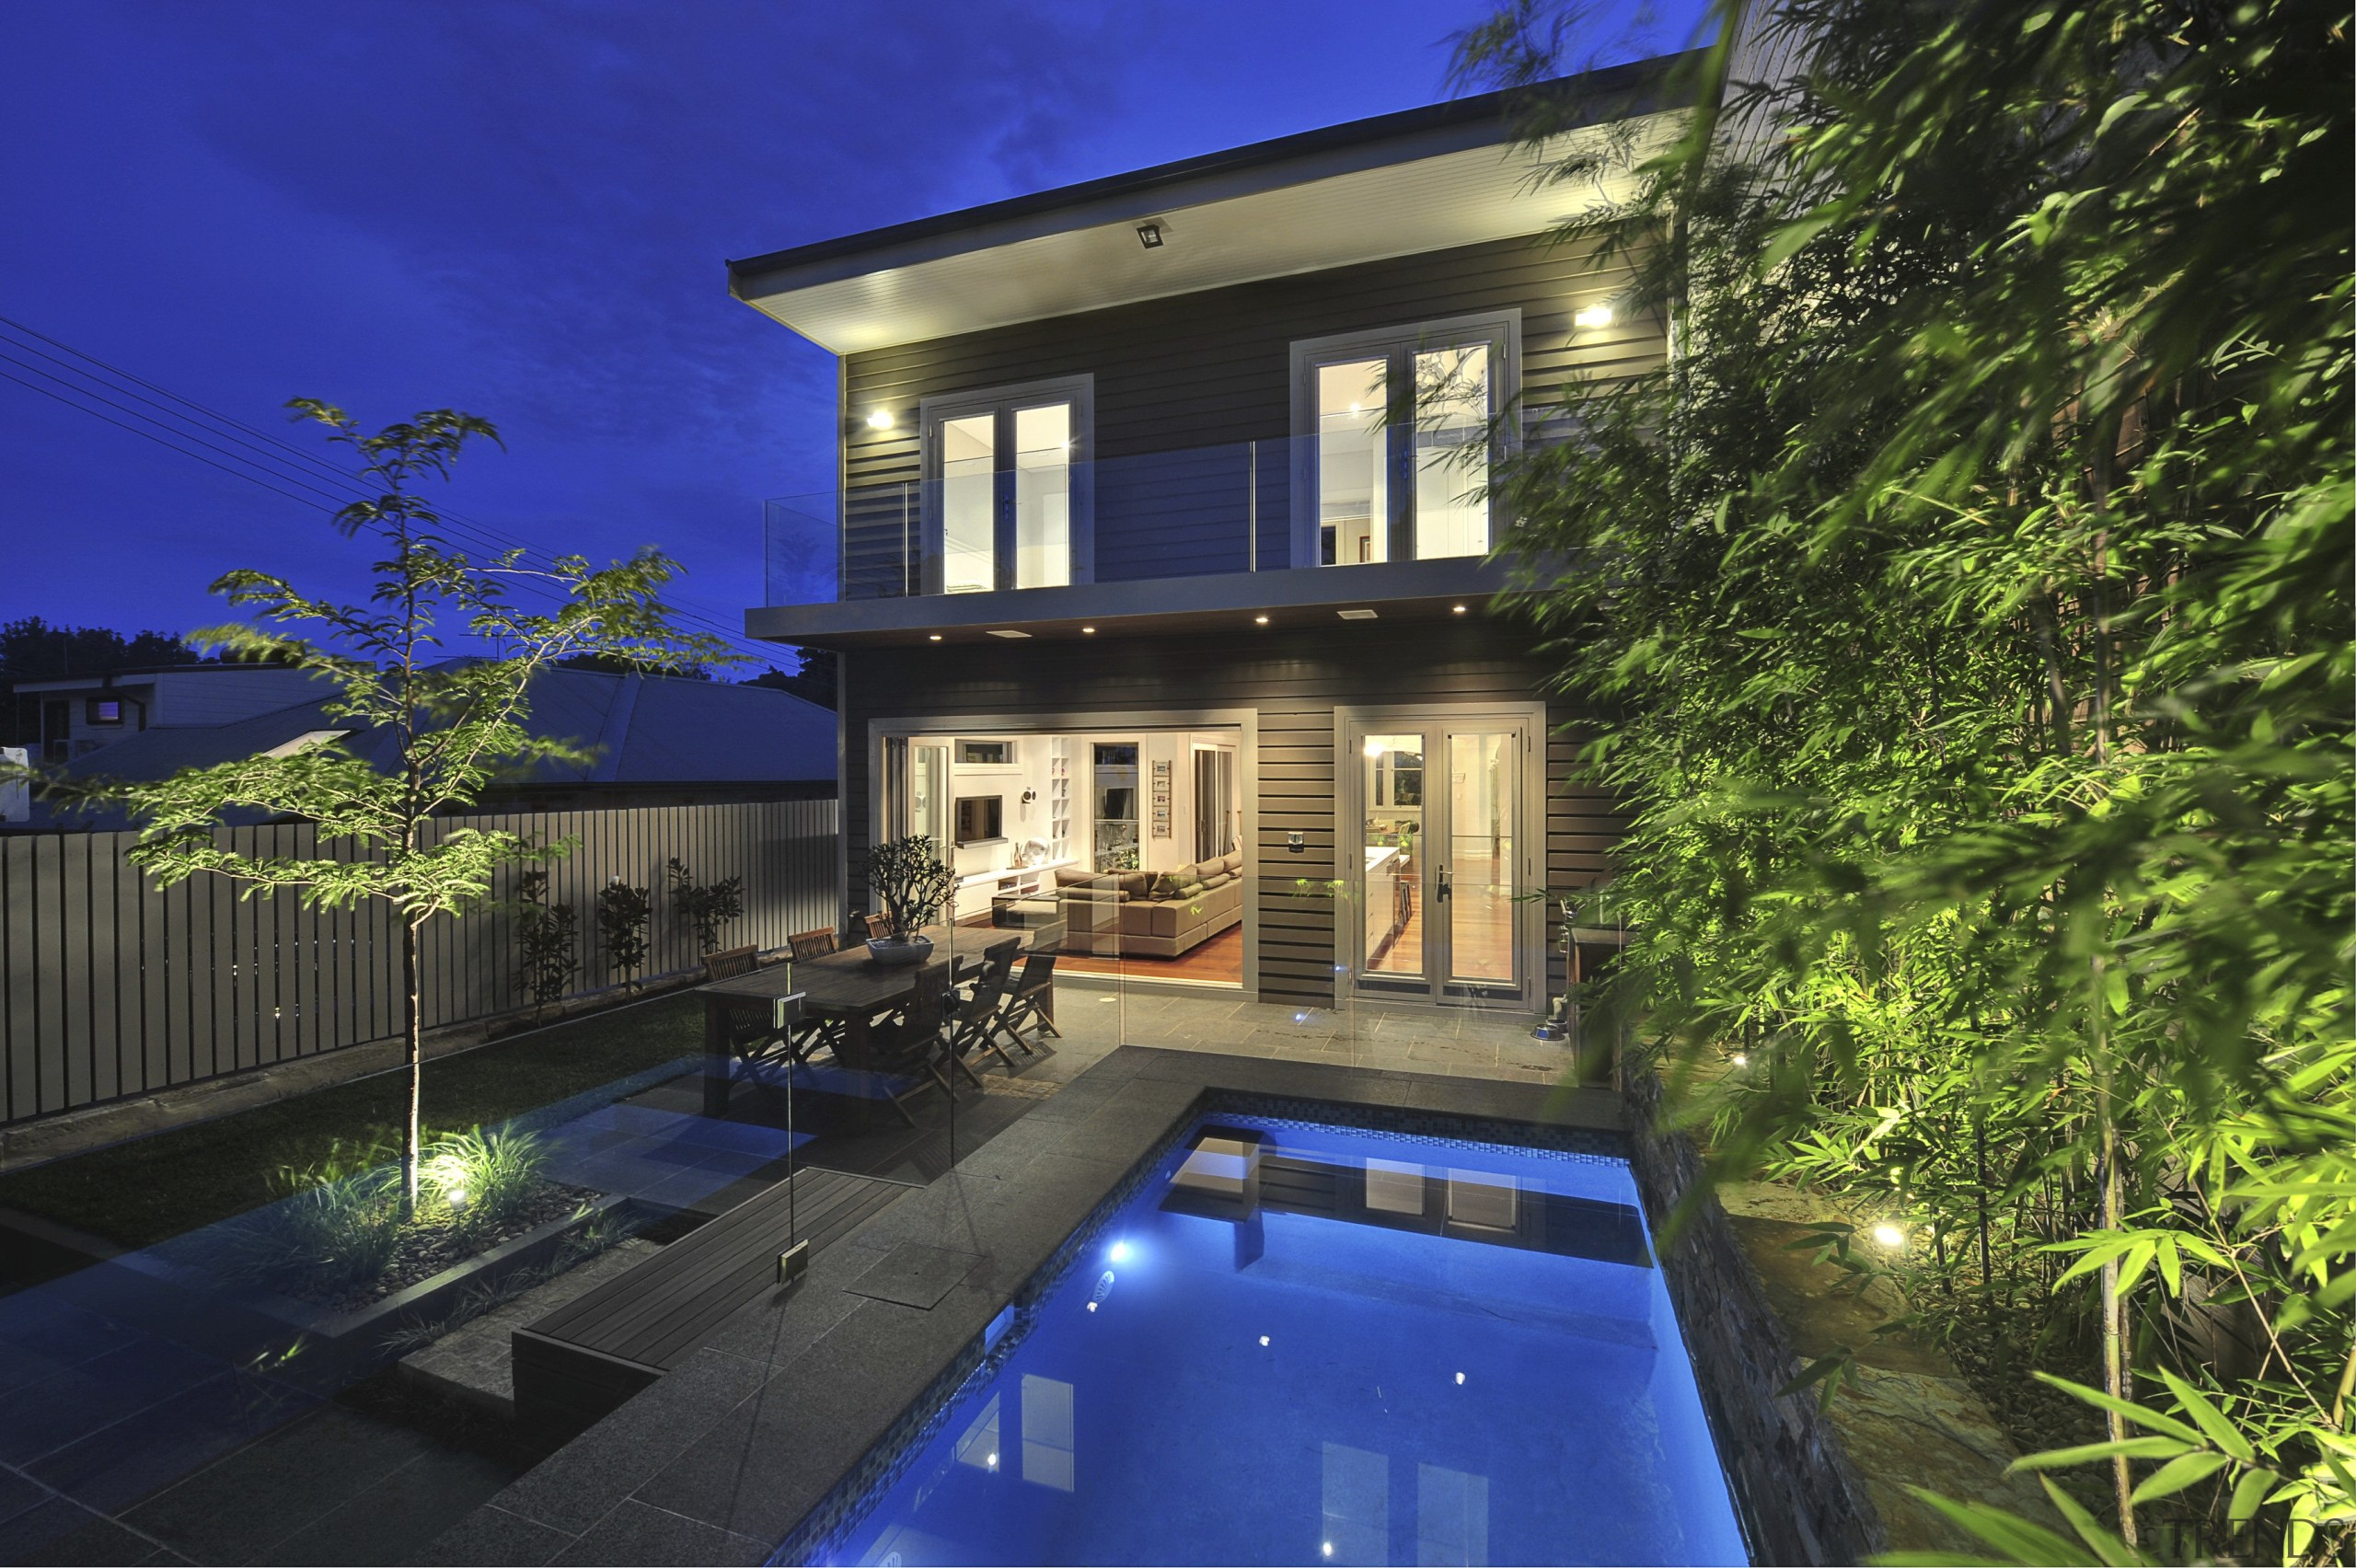 Backside of house with pool. - Backside of apartment, architecture, backyard, cottage, courtyard, estate, facade, family car, home, house, landscape lighting, lighting, mansion, property, real estate, reflection, residential area, sky, swimming pool, villa, window, blue